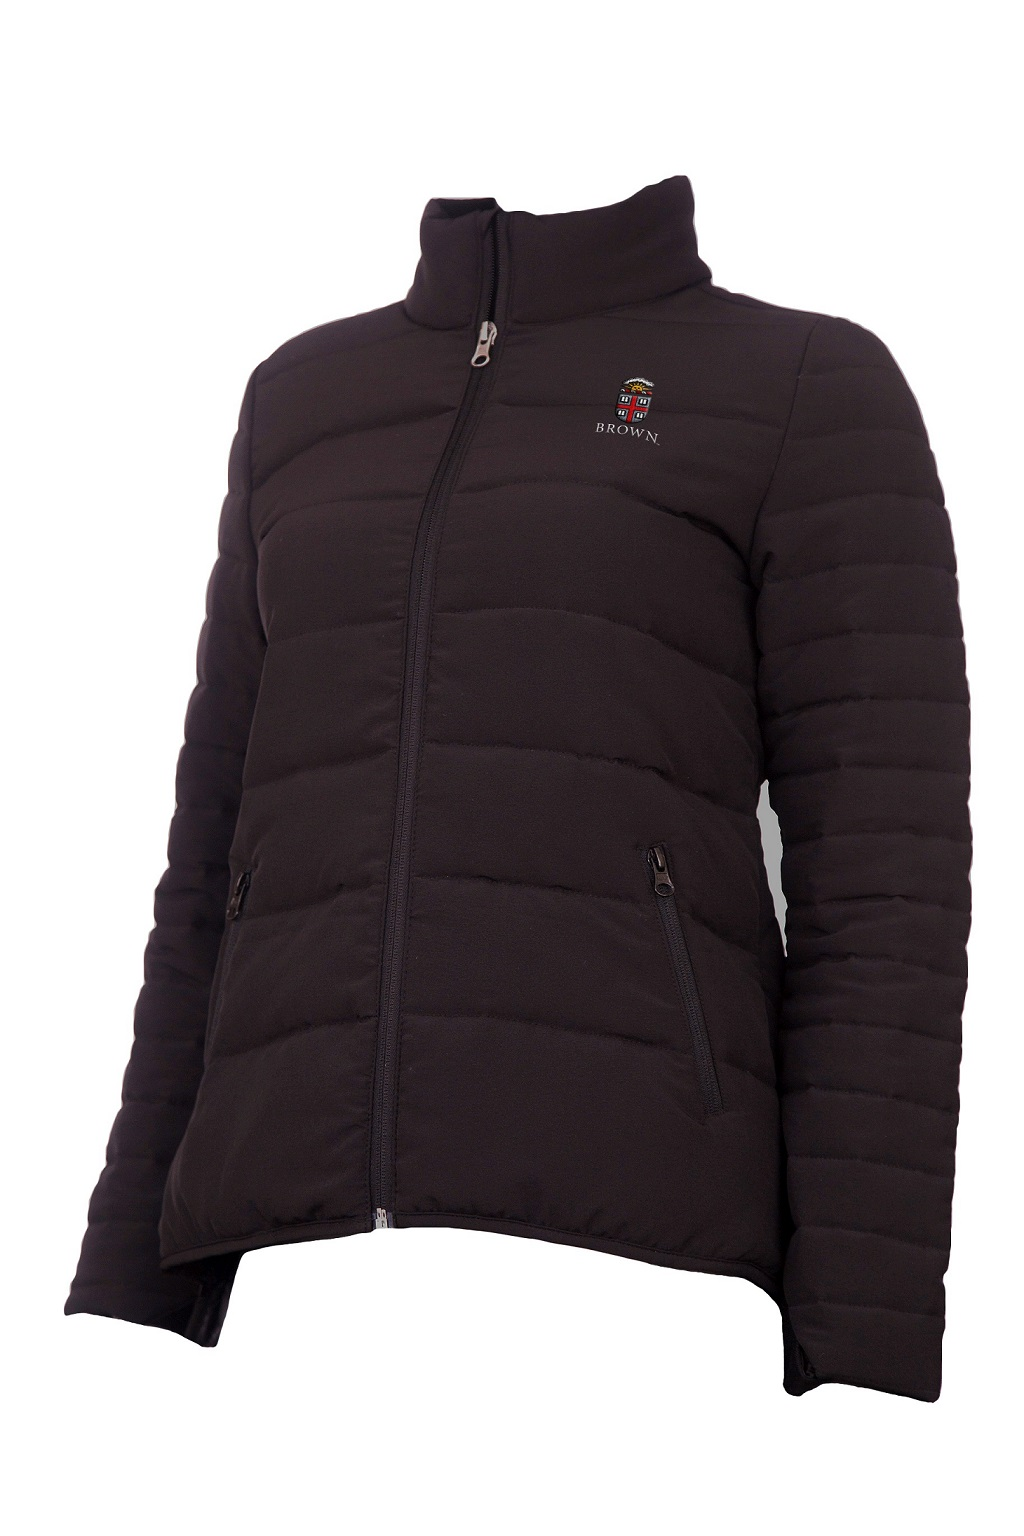 Image For Ivy Citizens Women's Puffer Jacket - Black or Ivory